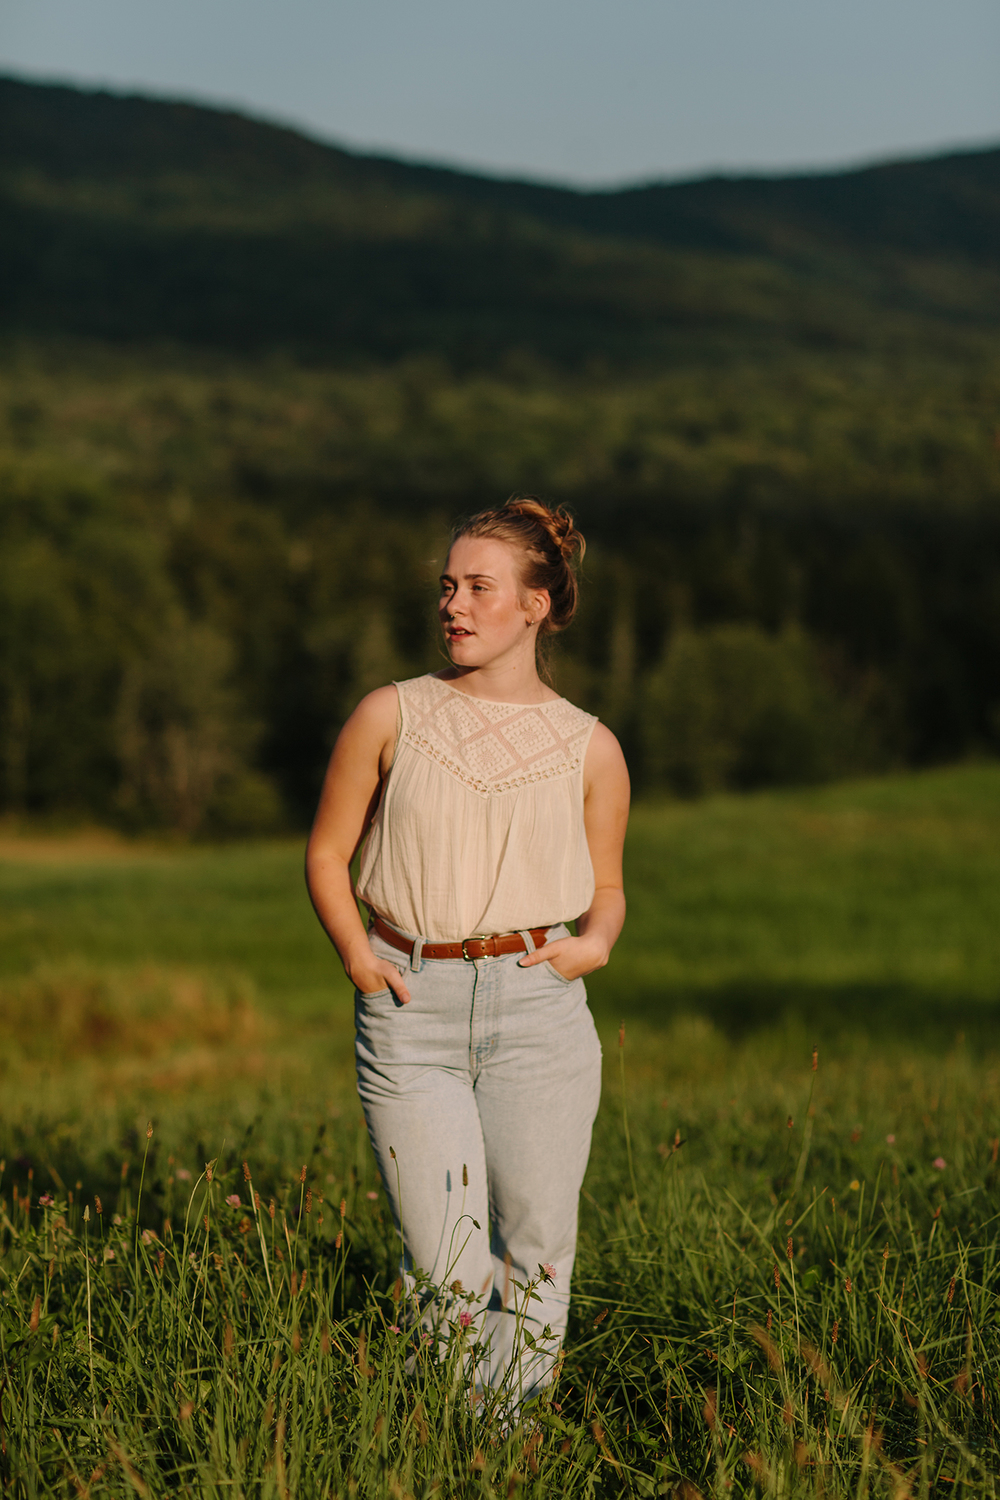 vermont_senior_portraits_photographer14.JPG